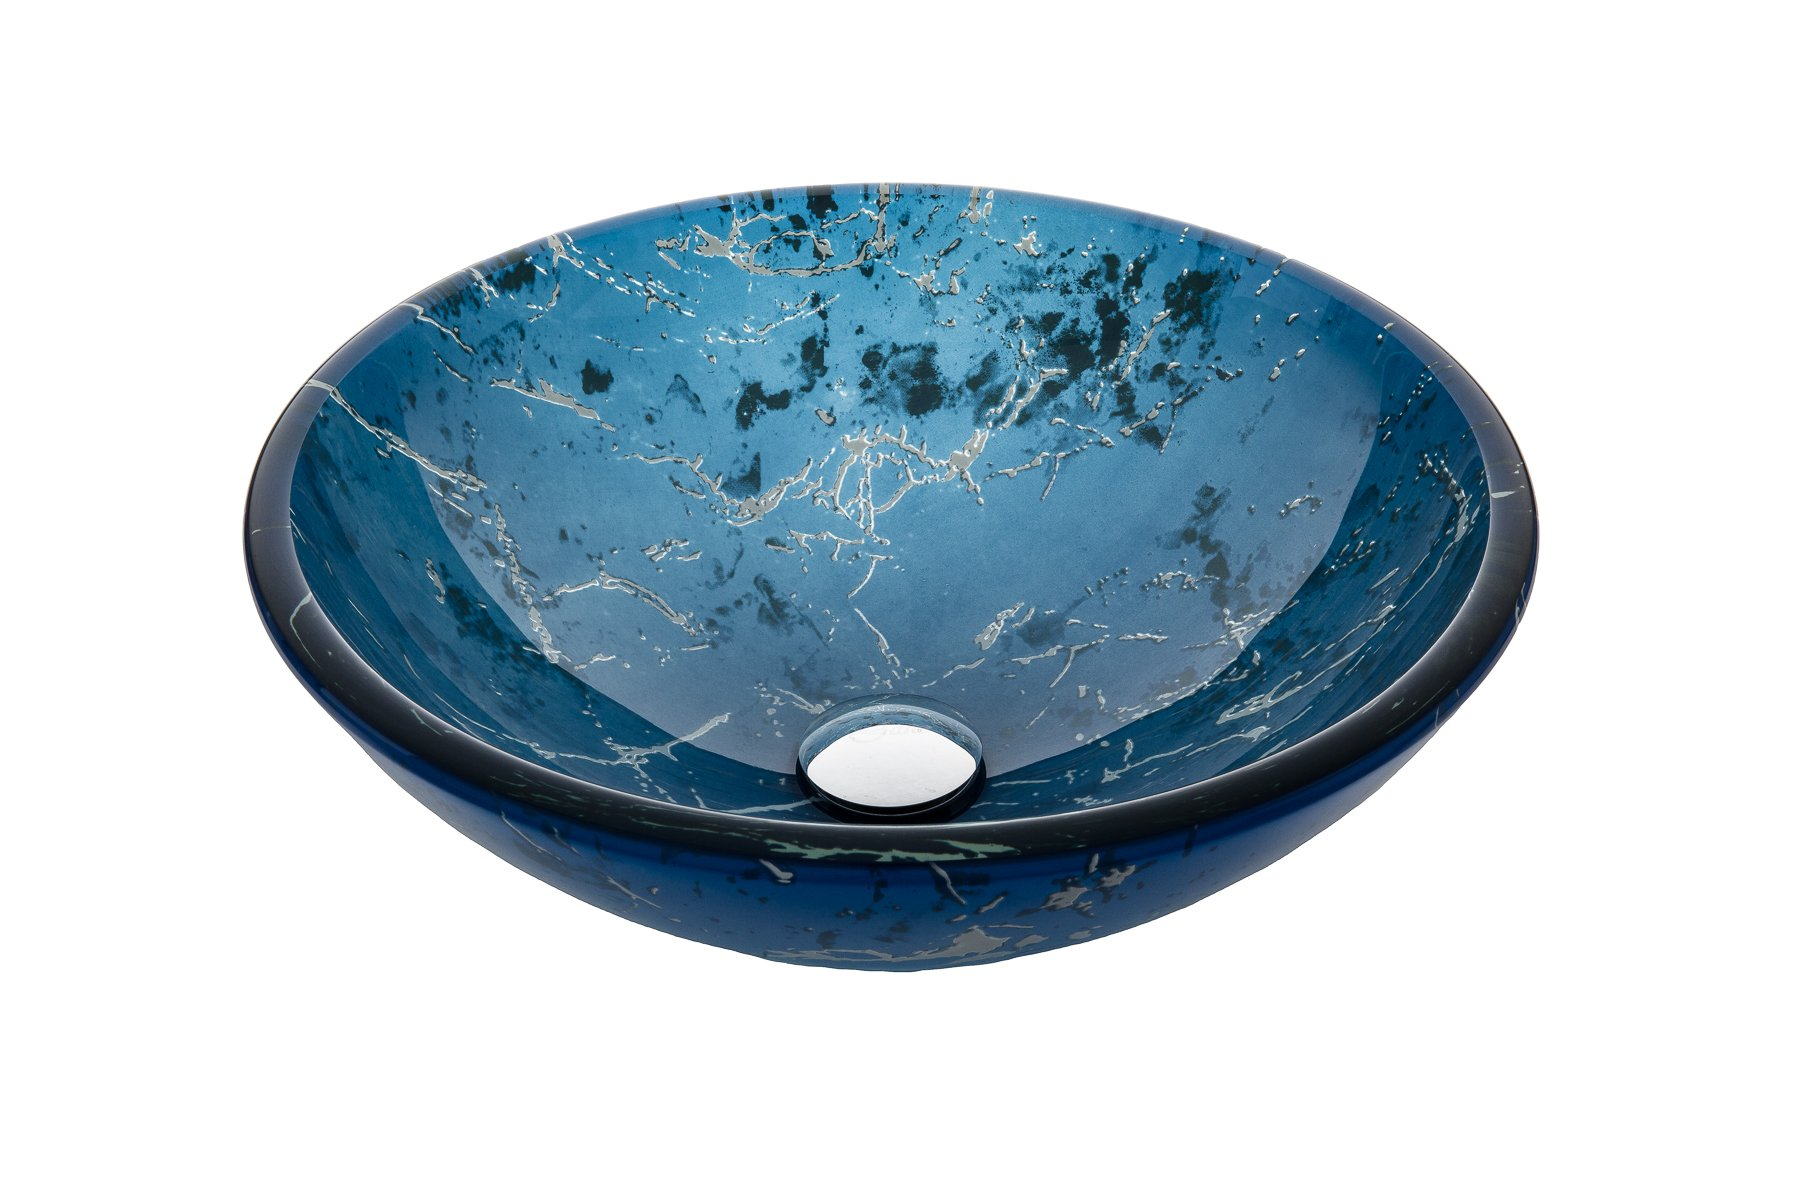 Jano JGV17 Blue Marble Tempered Glass Vessel Bathroom Sink With Pop-up Drain